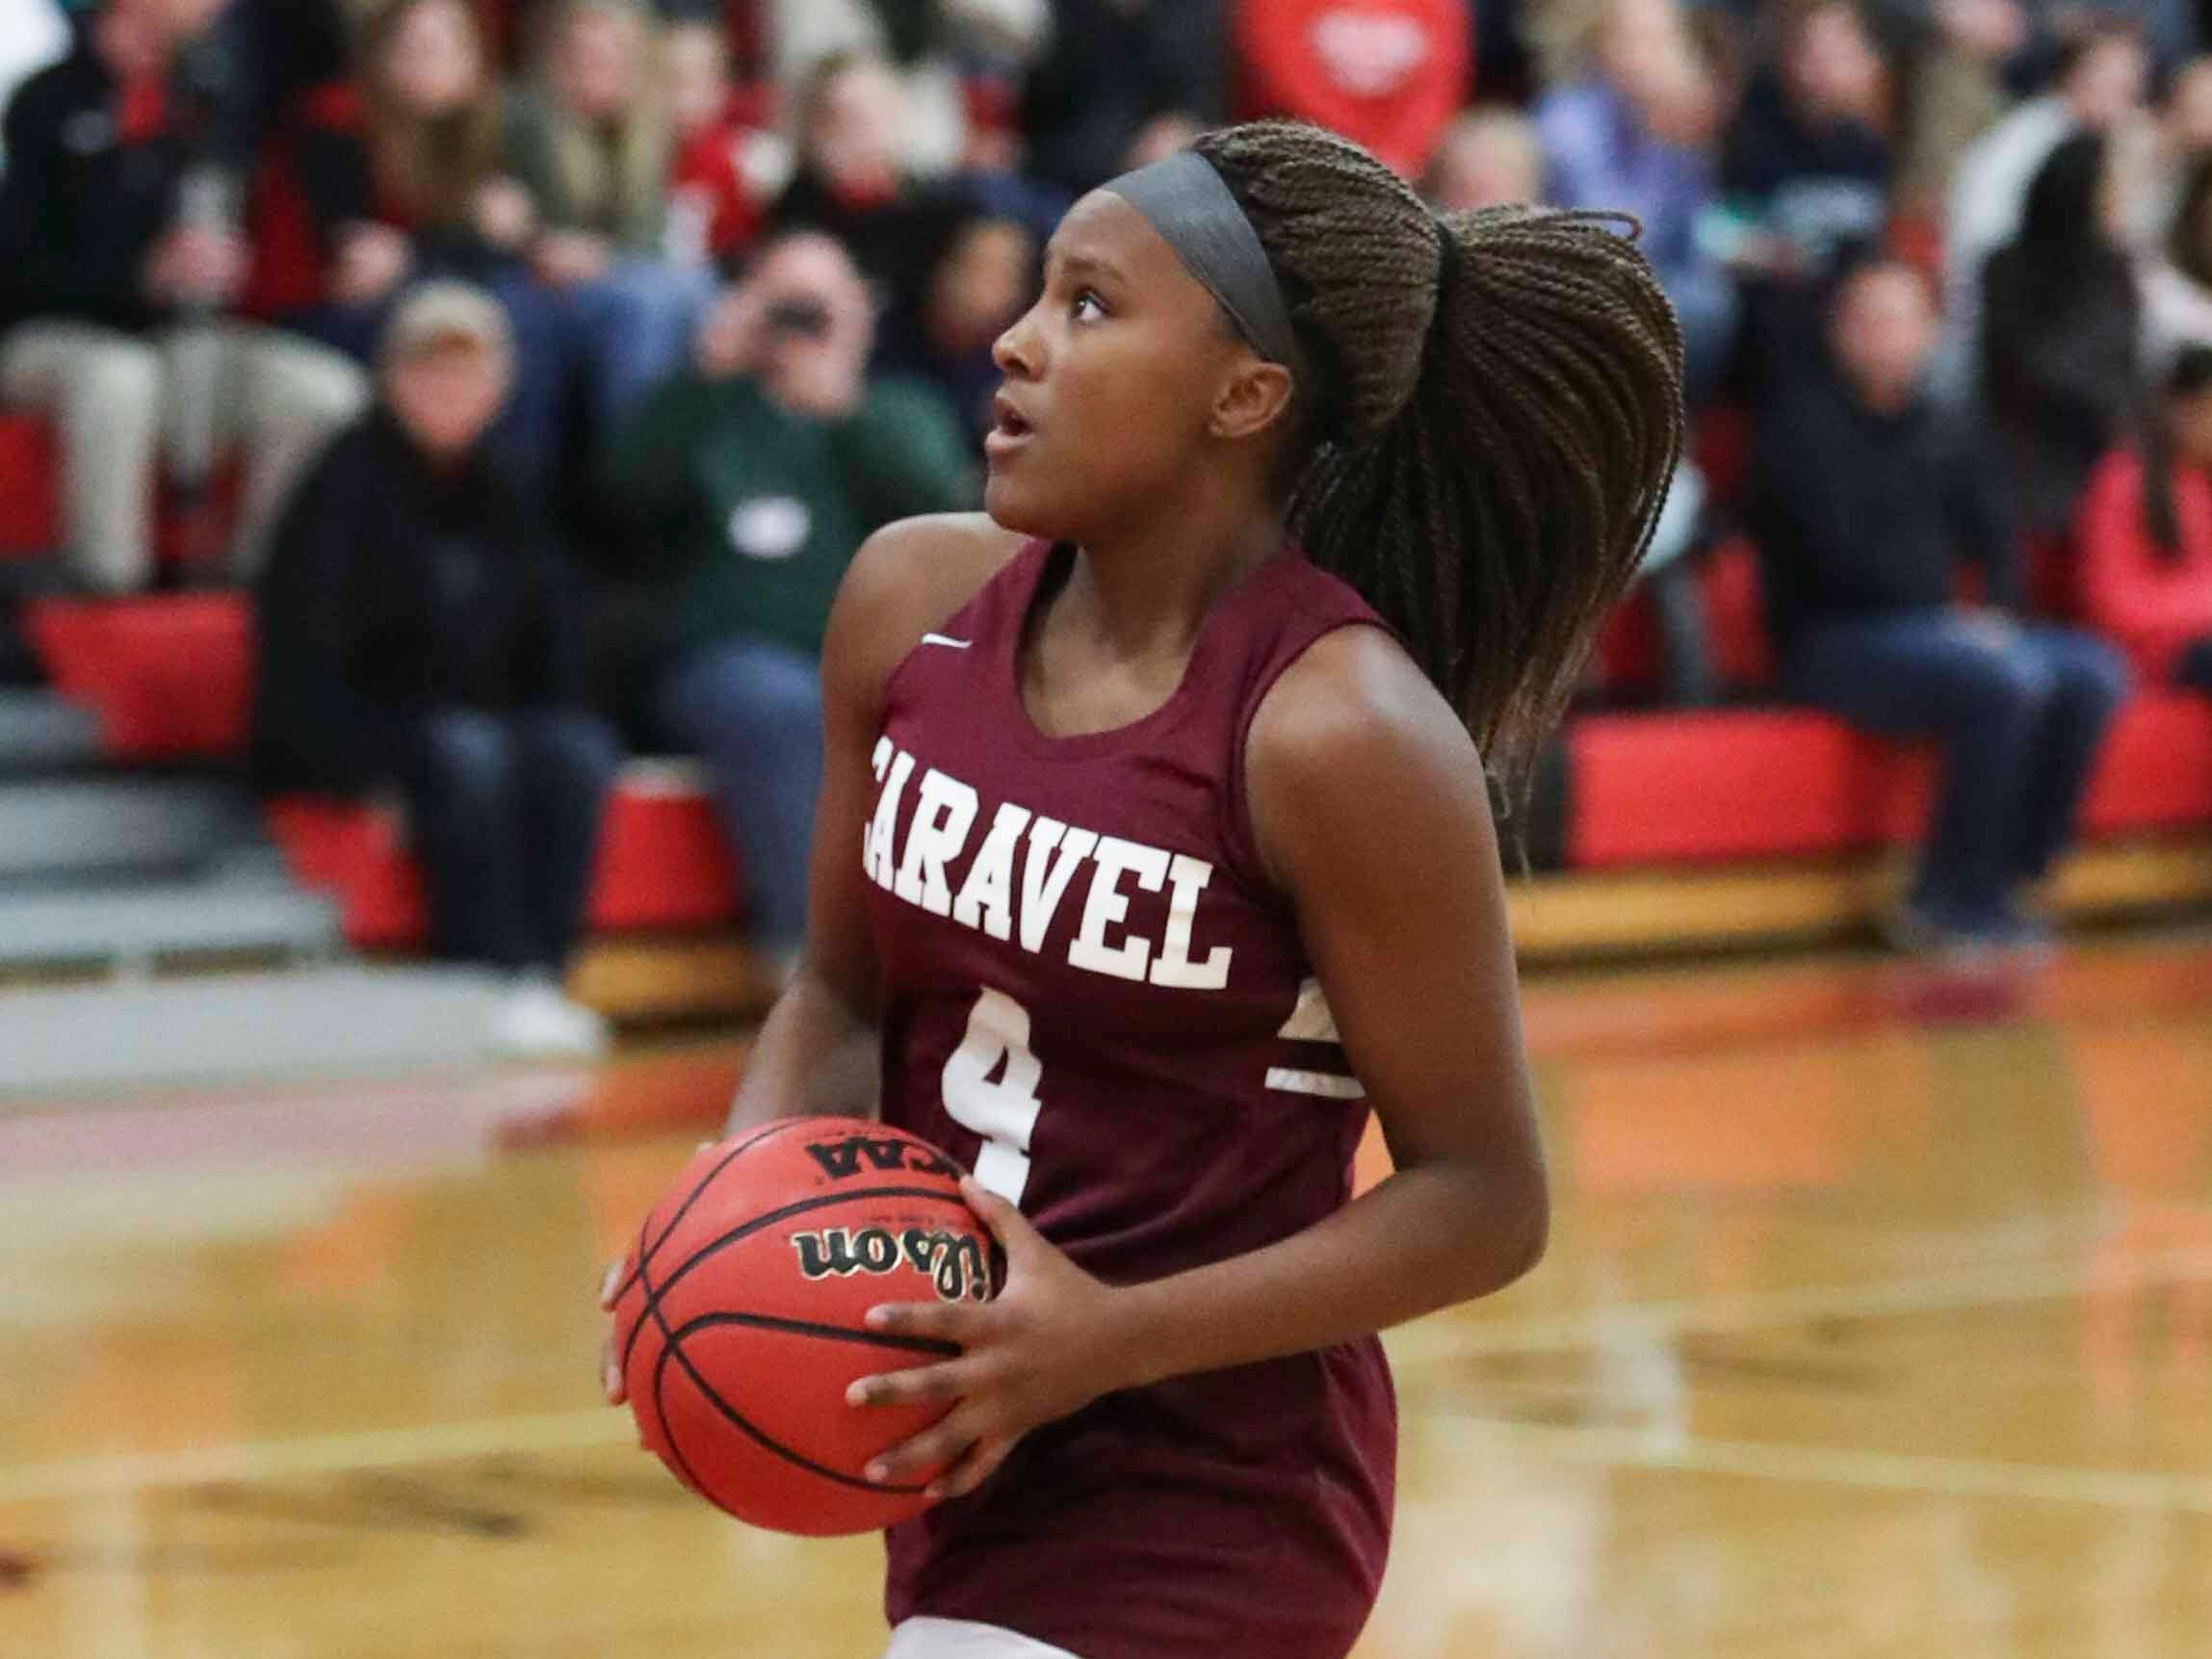 Caravel's Sasha Marvel goes for two points after a steal in the Bucs' 42-31 win at Ursuline Wednesday.